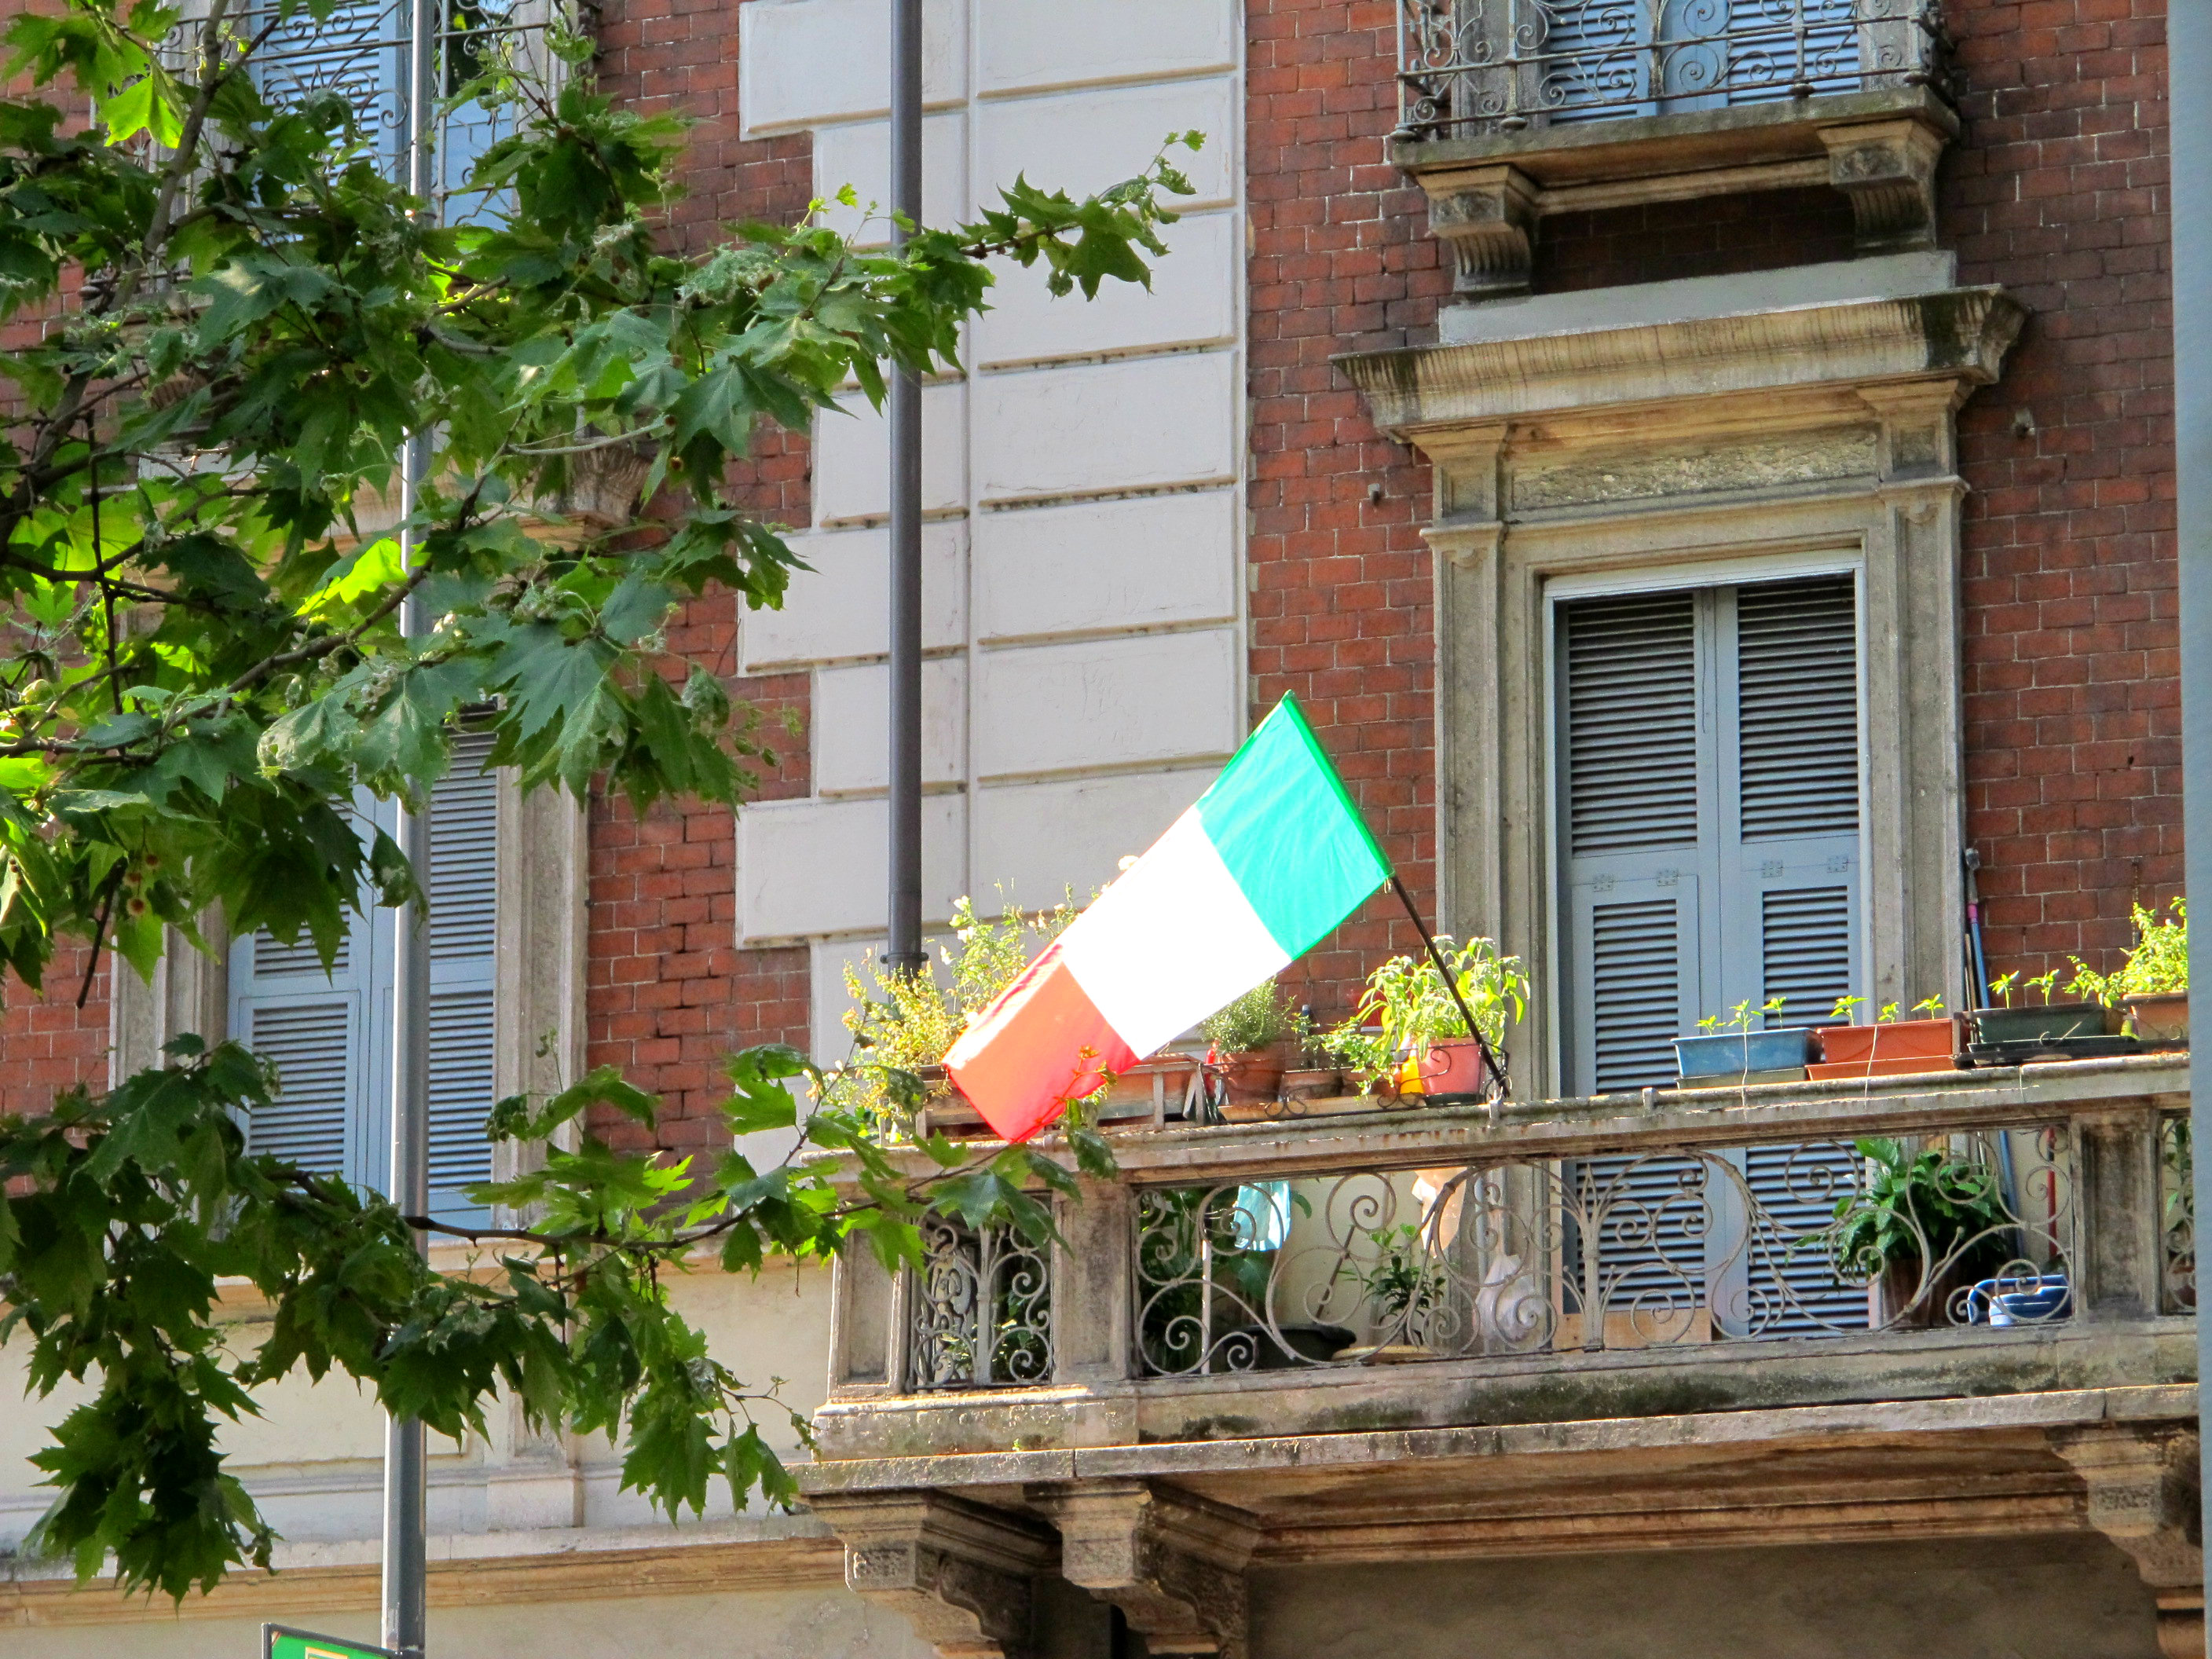 Post-Italy stress disorder, l'amour, le vrai!